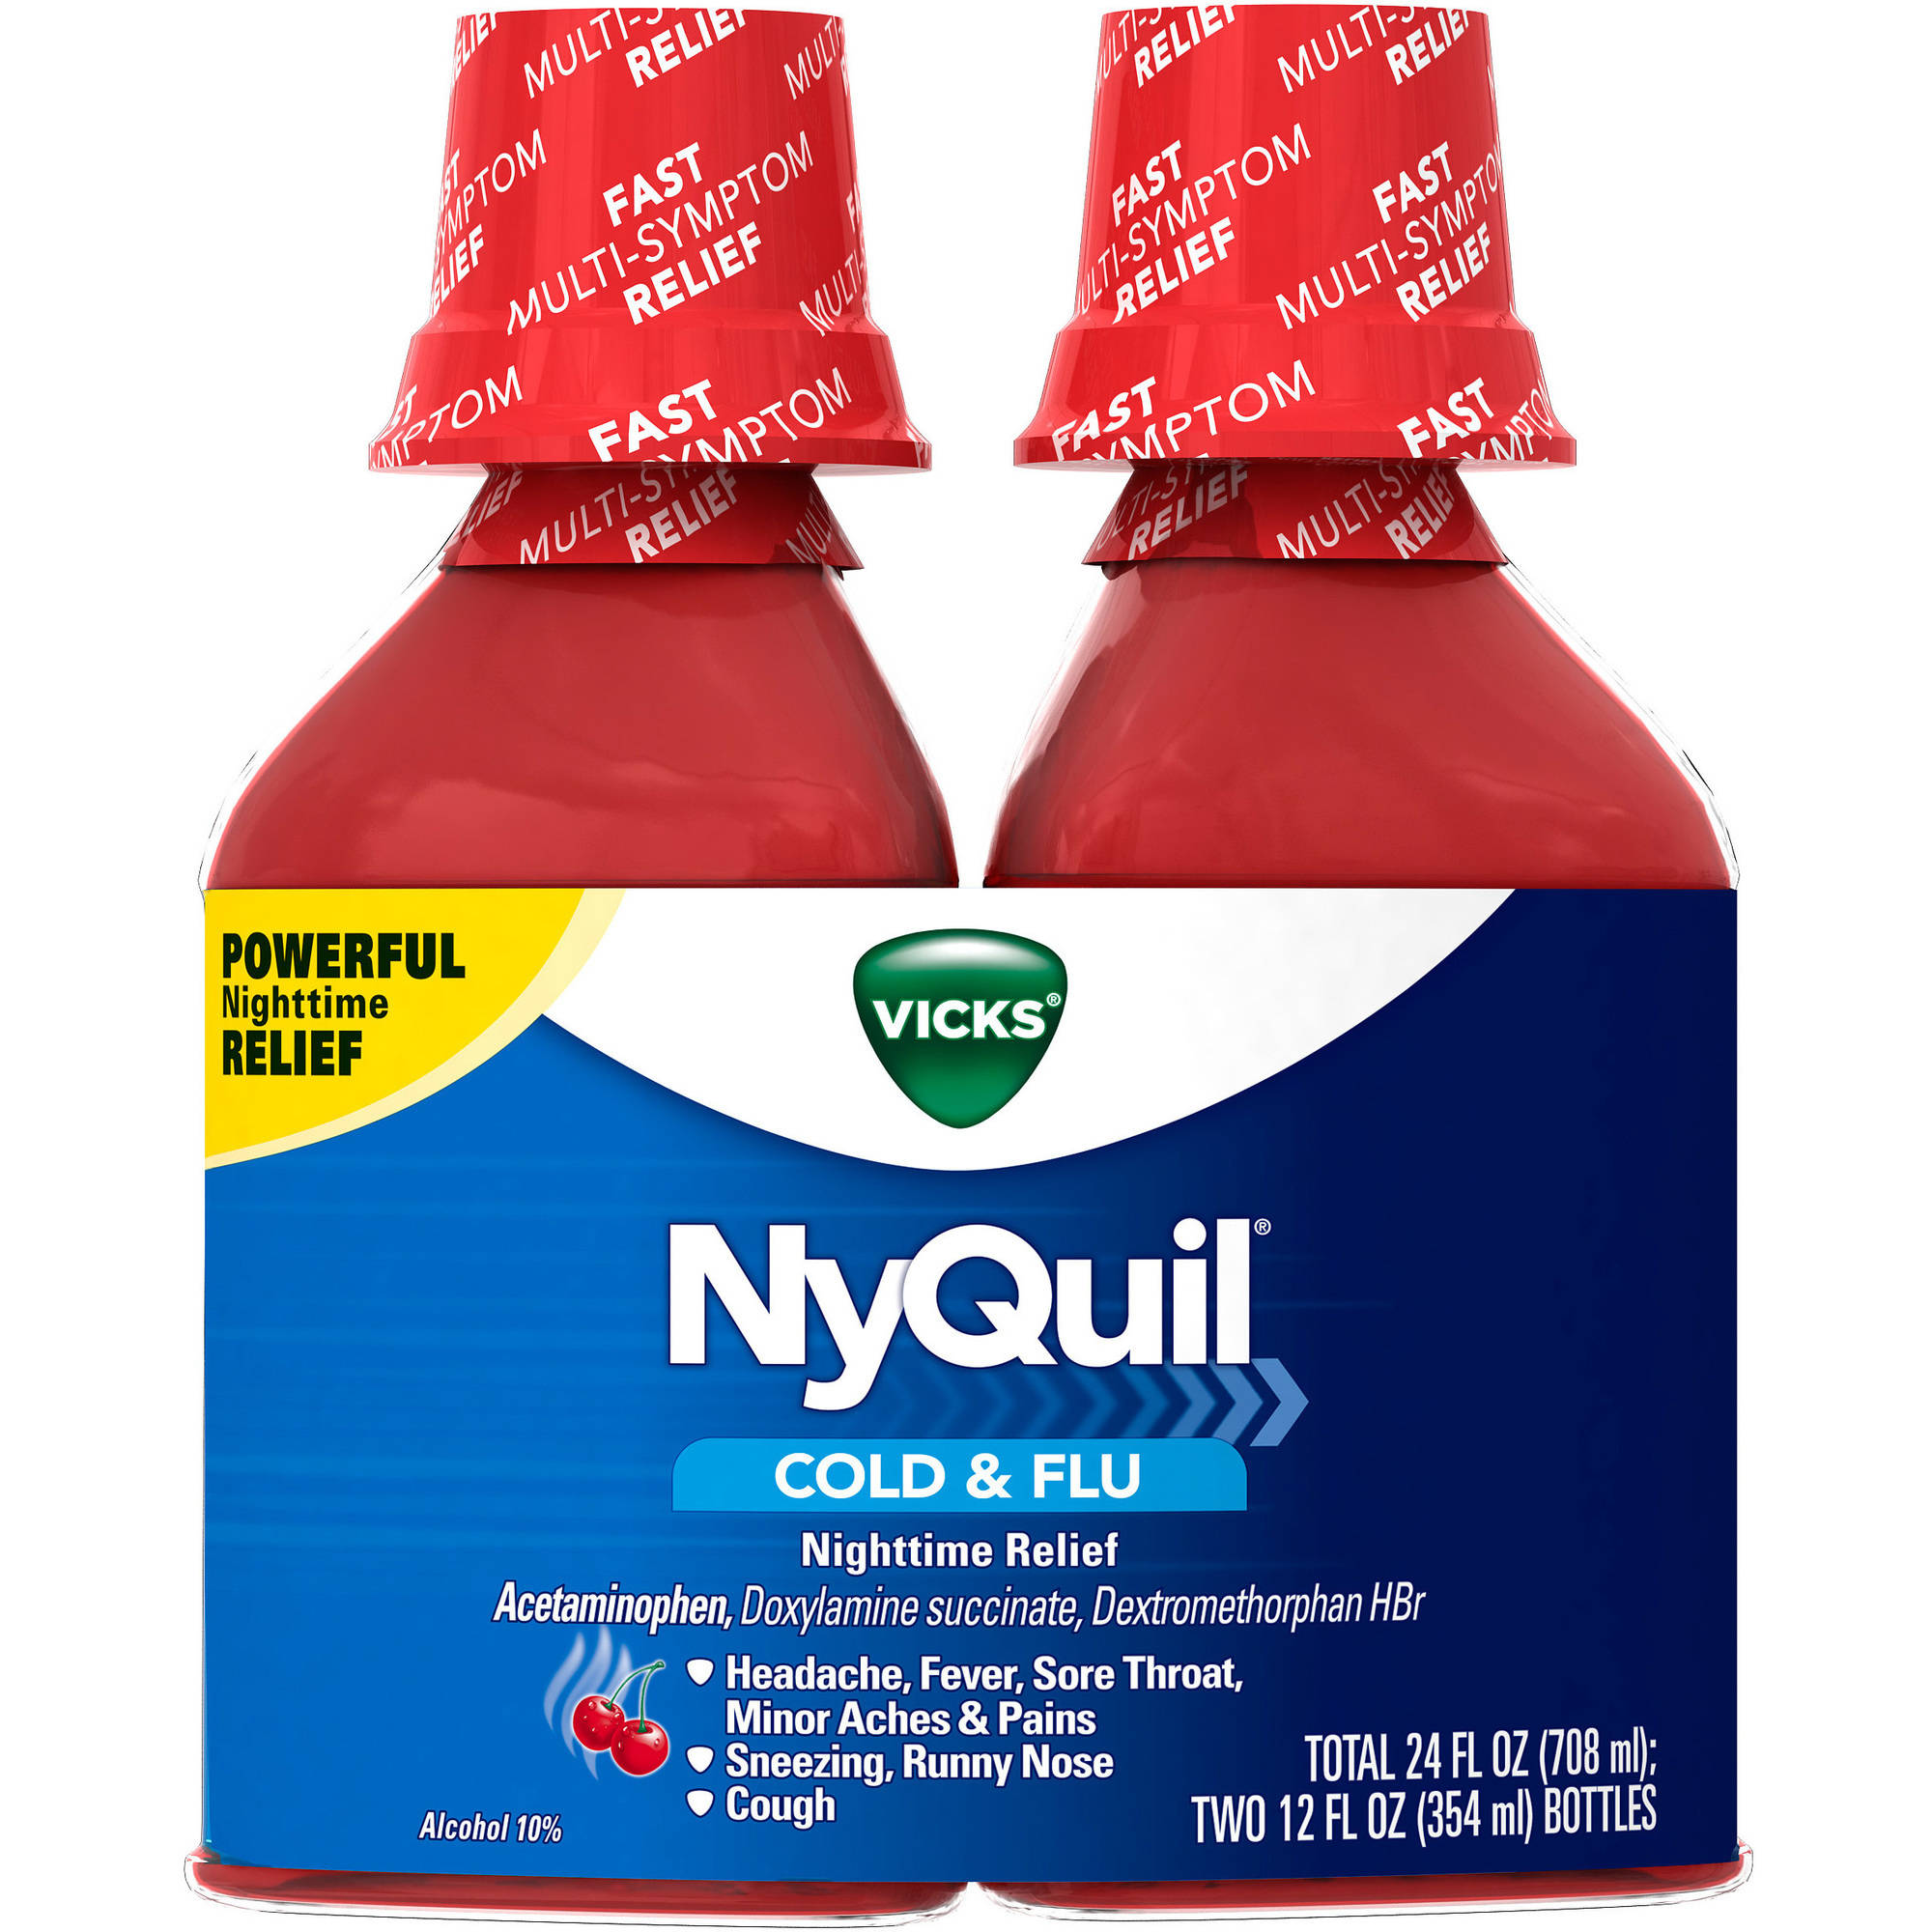 Vicks NyQuil Cold & Flu Nighttime Relief Cherry Flavor Liquid Cold Medicine, 12 fl oz, (Pack of 2)